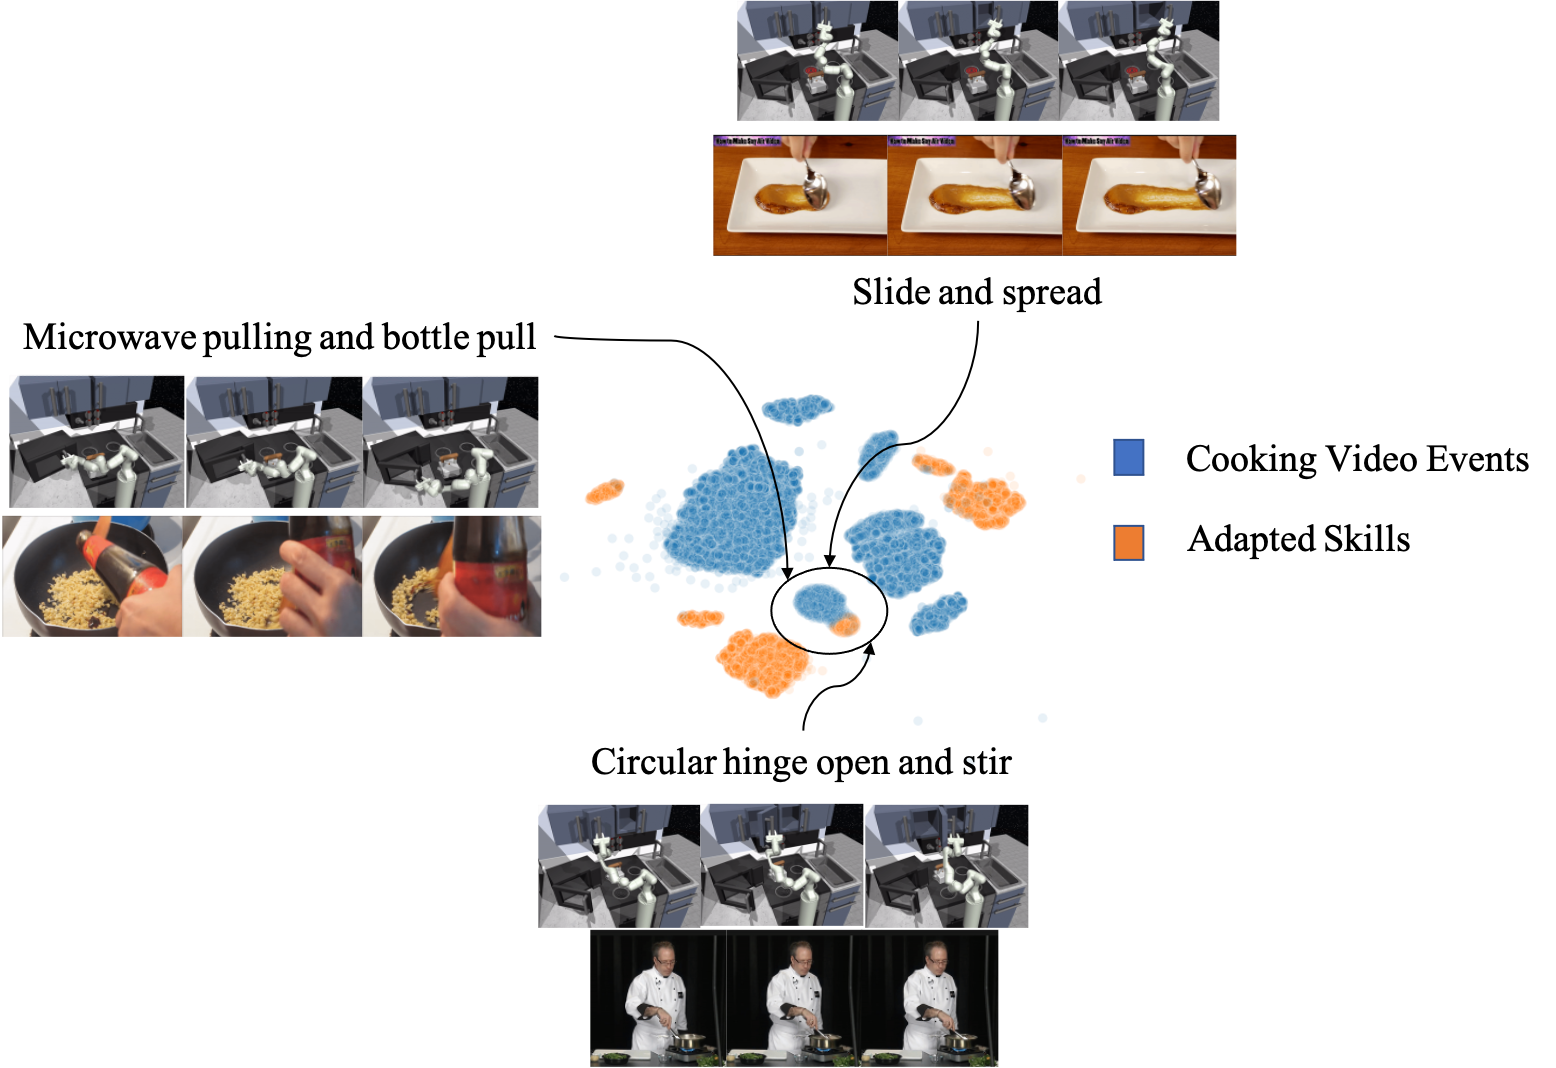 Using the cyclical homomorphisms, we embed events from the human cooking demonstration videos and skills from the robotic kitchen environment into the same latent space. We explore the representation learning capacity by finding overlapping regions of the latent space and exploring their semantic meaning. V2S produces semantically meaningful analogies.